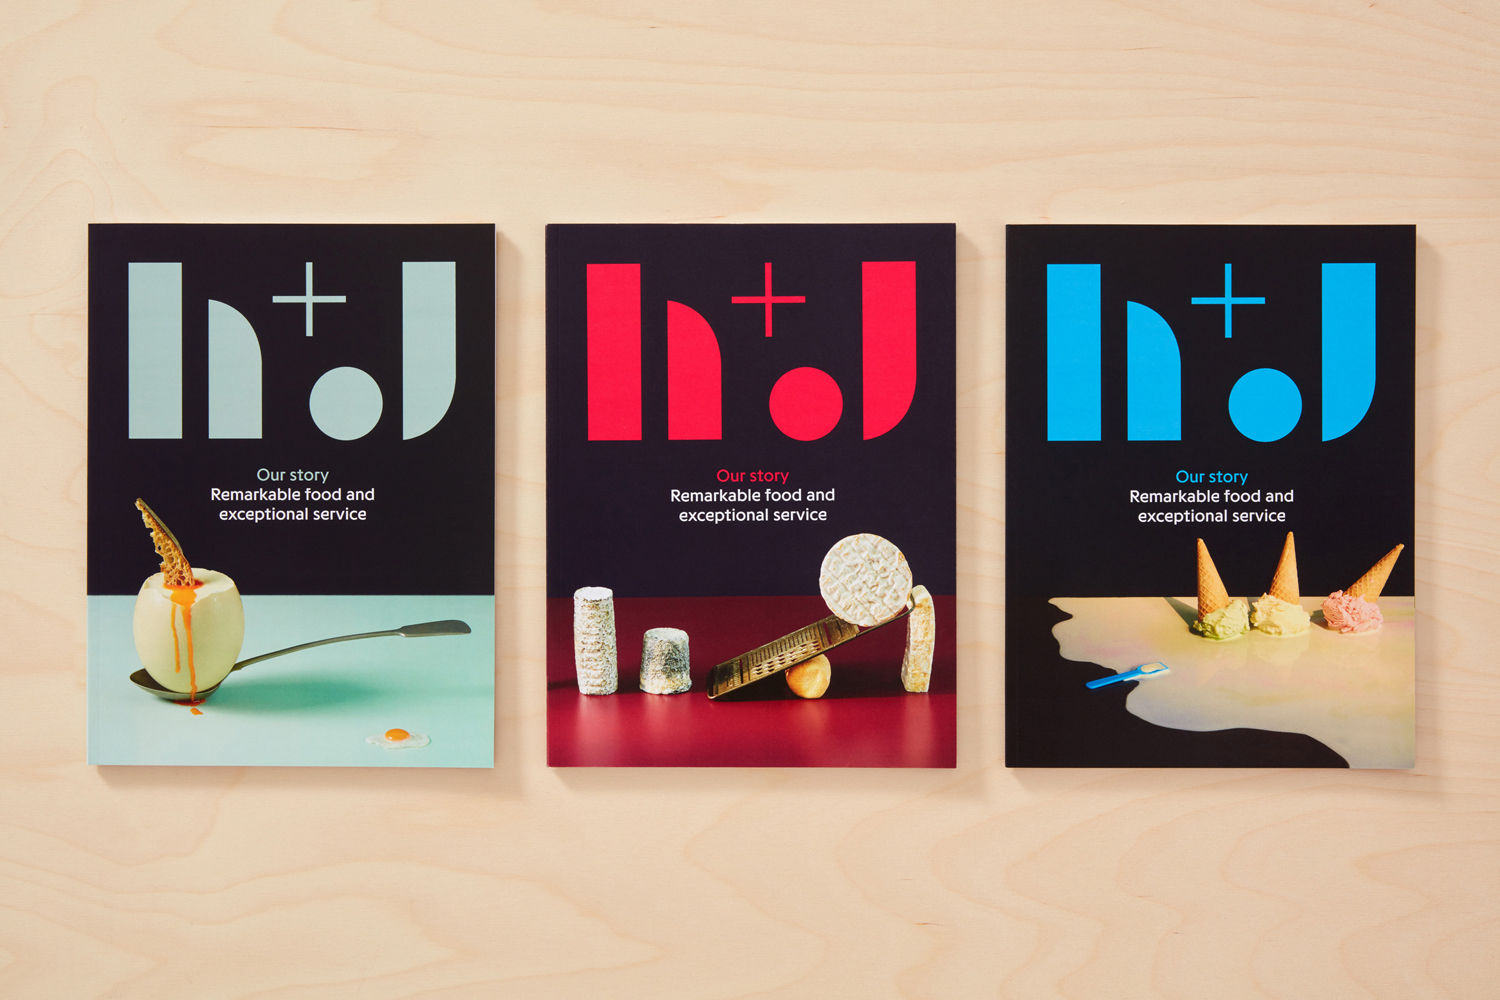 2-HJ-Catering-Branding-Print-Spy-London-UK-BPO